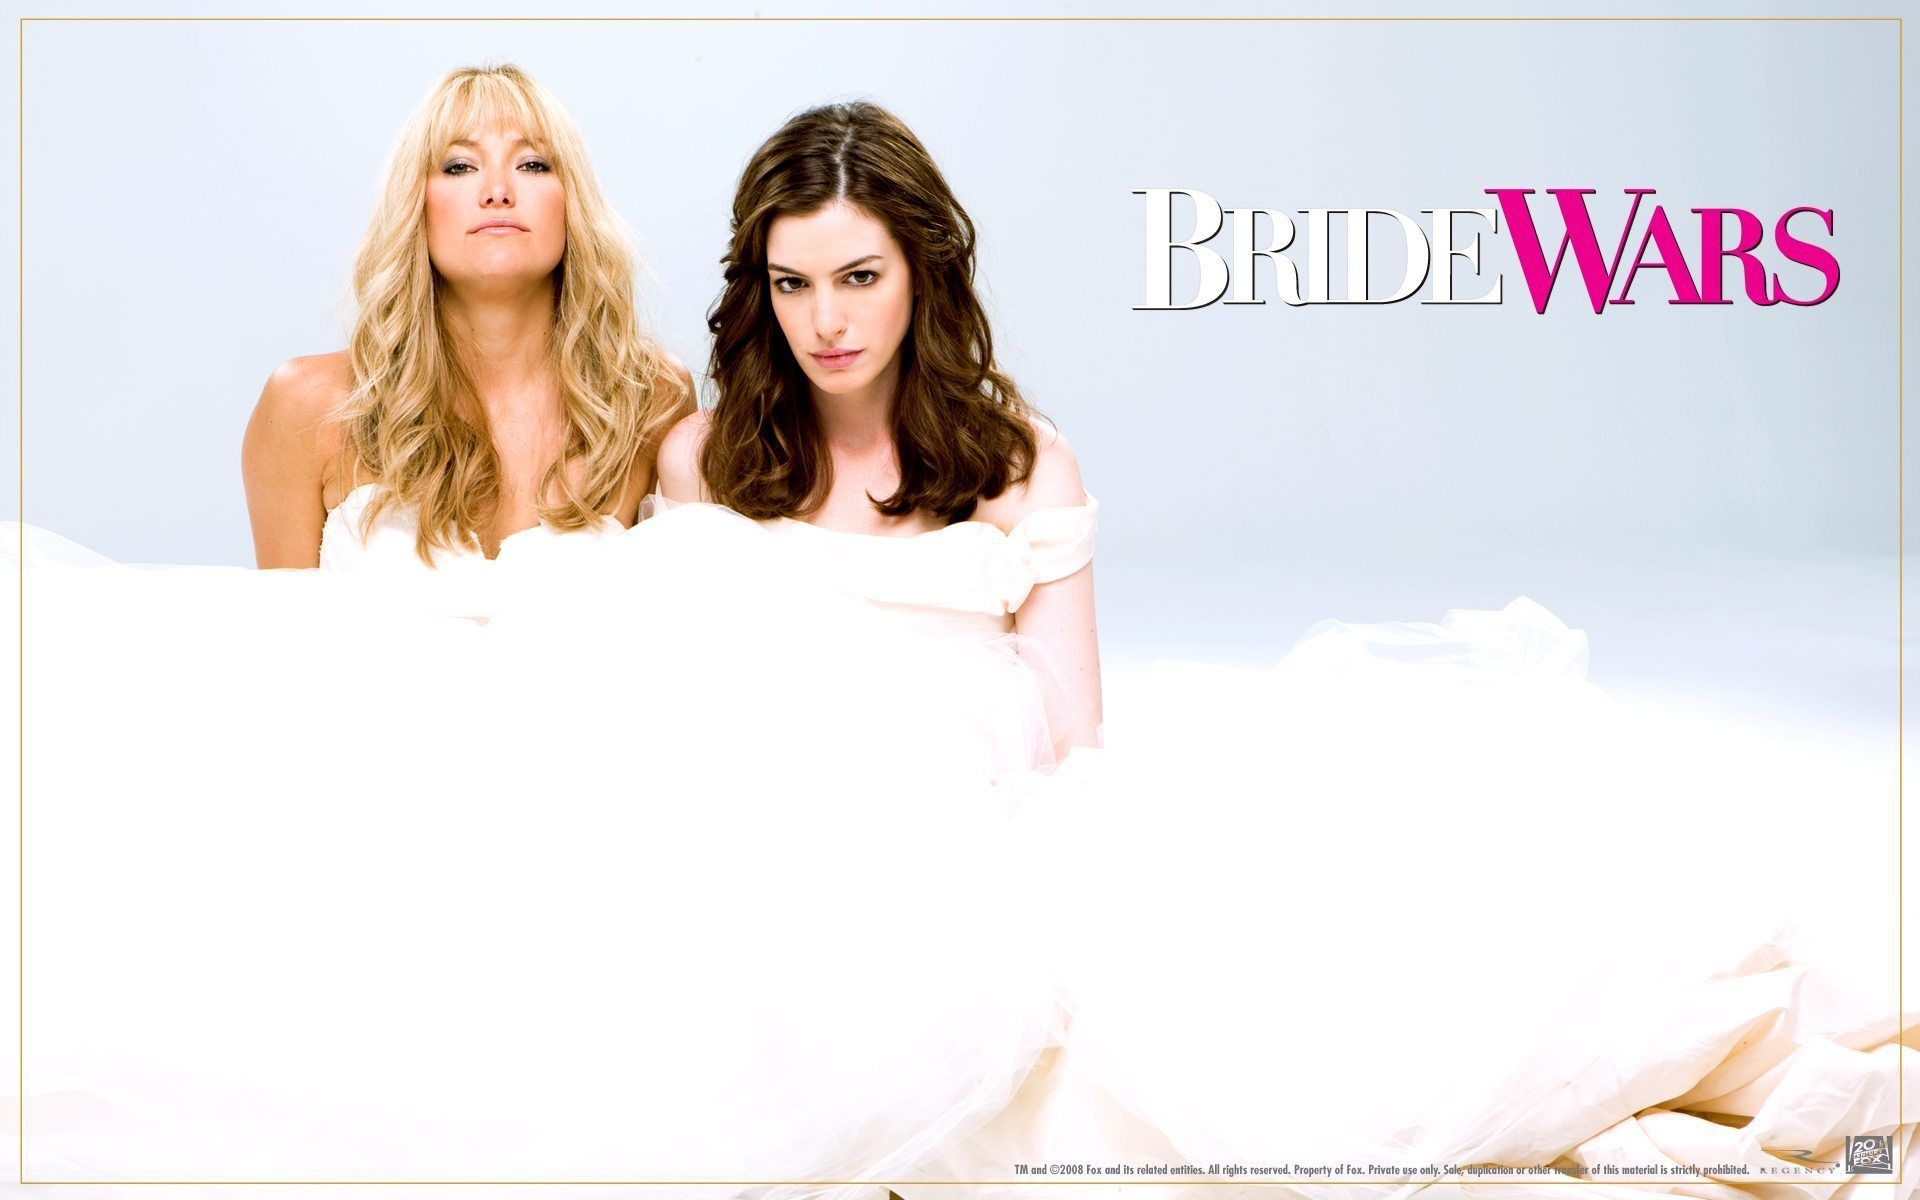 Bride Wars 2009 Comedy Two Best Friends Become Rivals When They Schedule Their Respective Weddings On The Same Day Bride Wars Wedding Movies Wedding Film